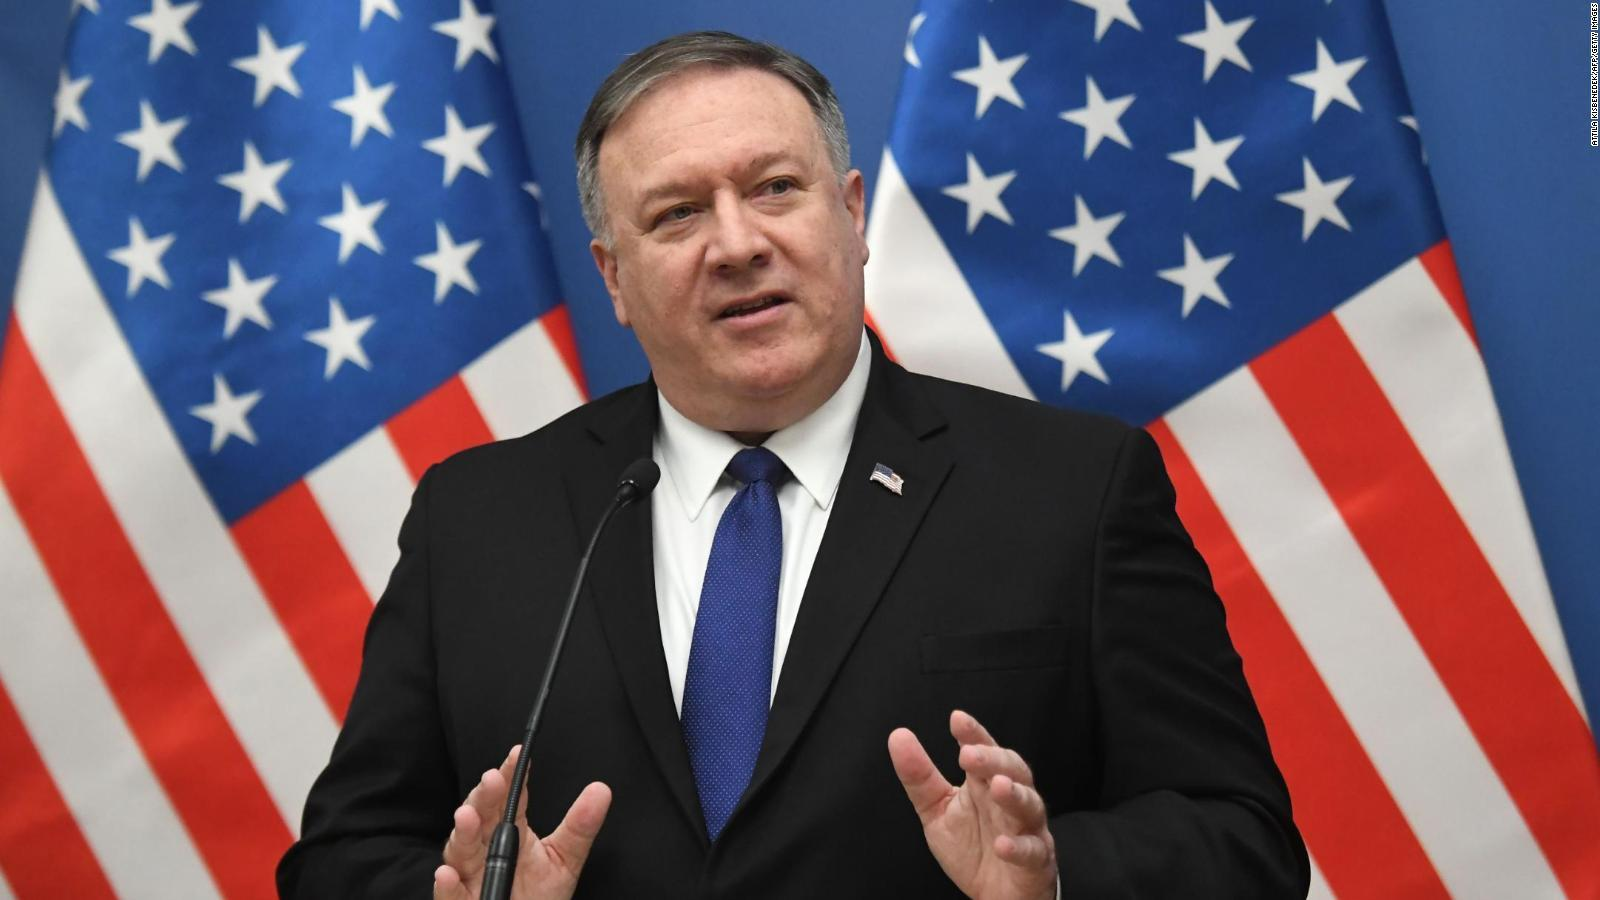 These panels will flow from China to the US - Pompeo